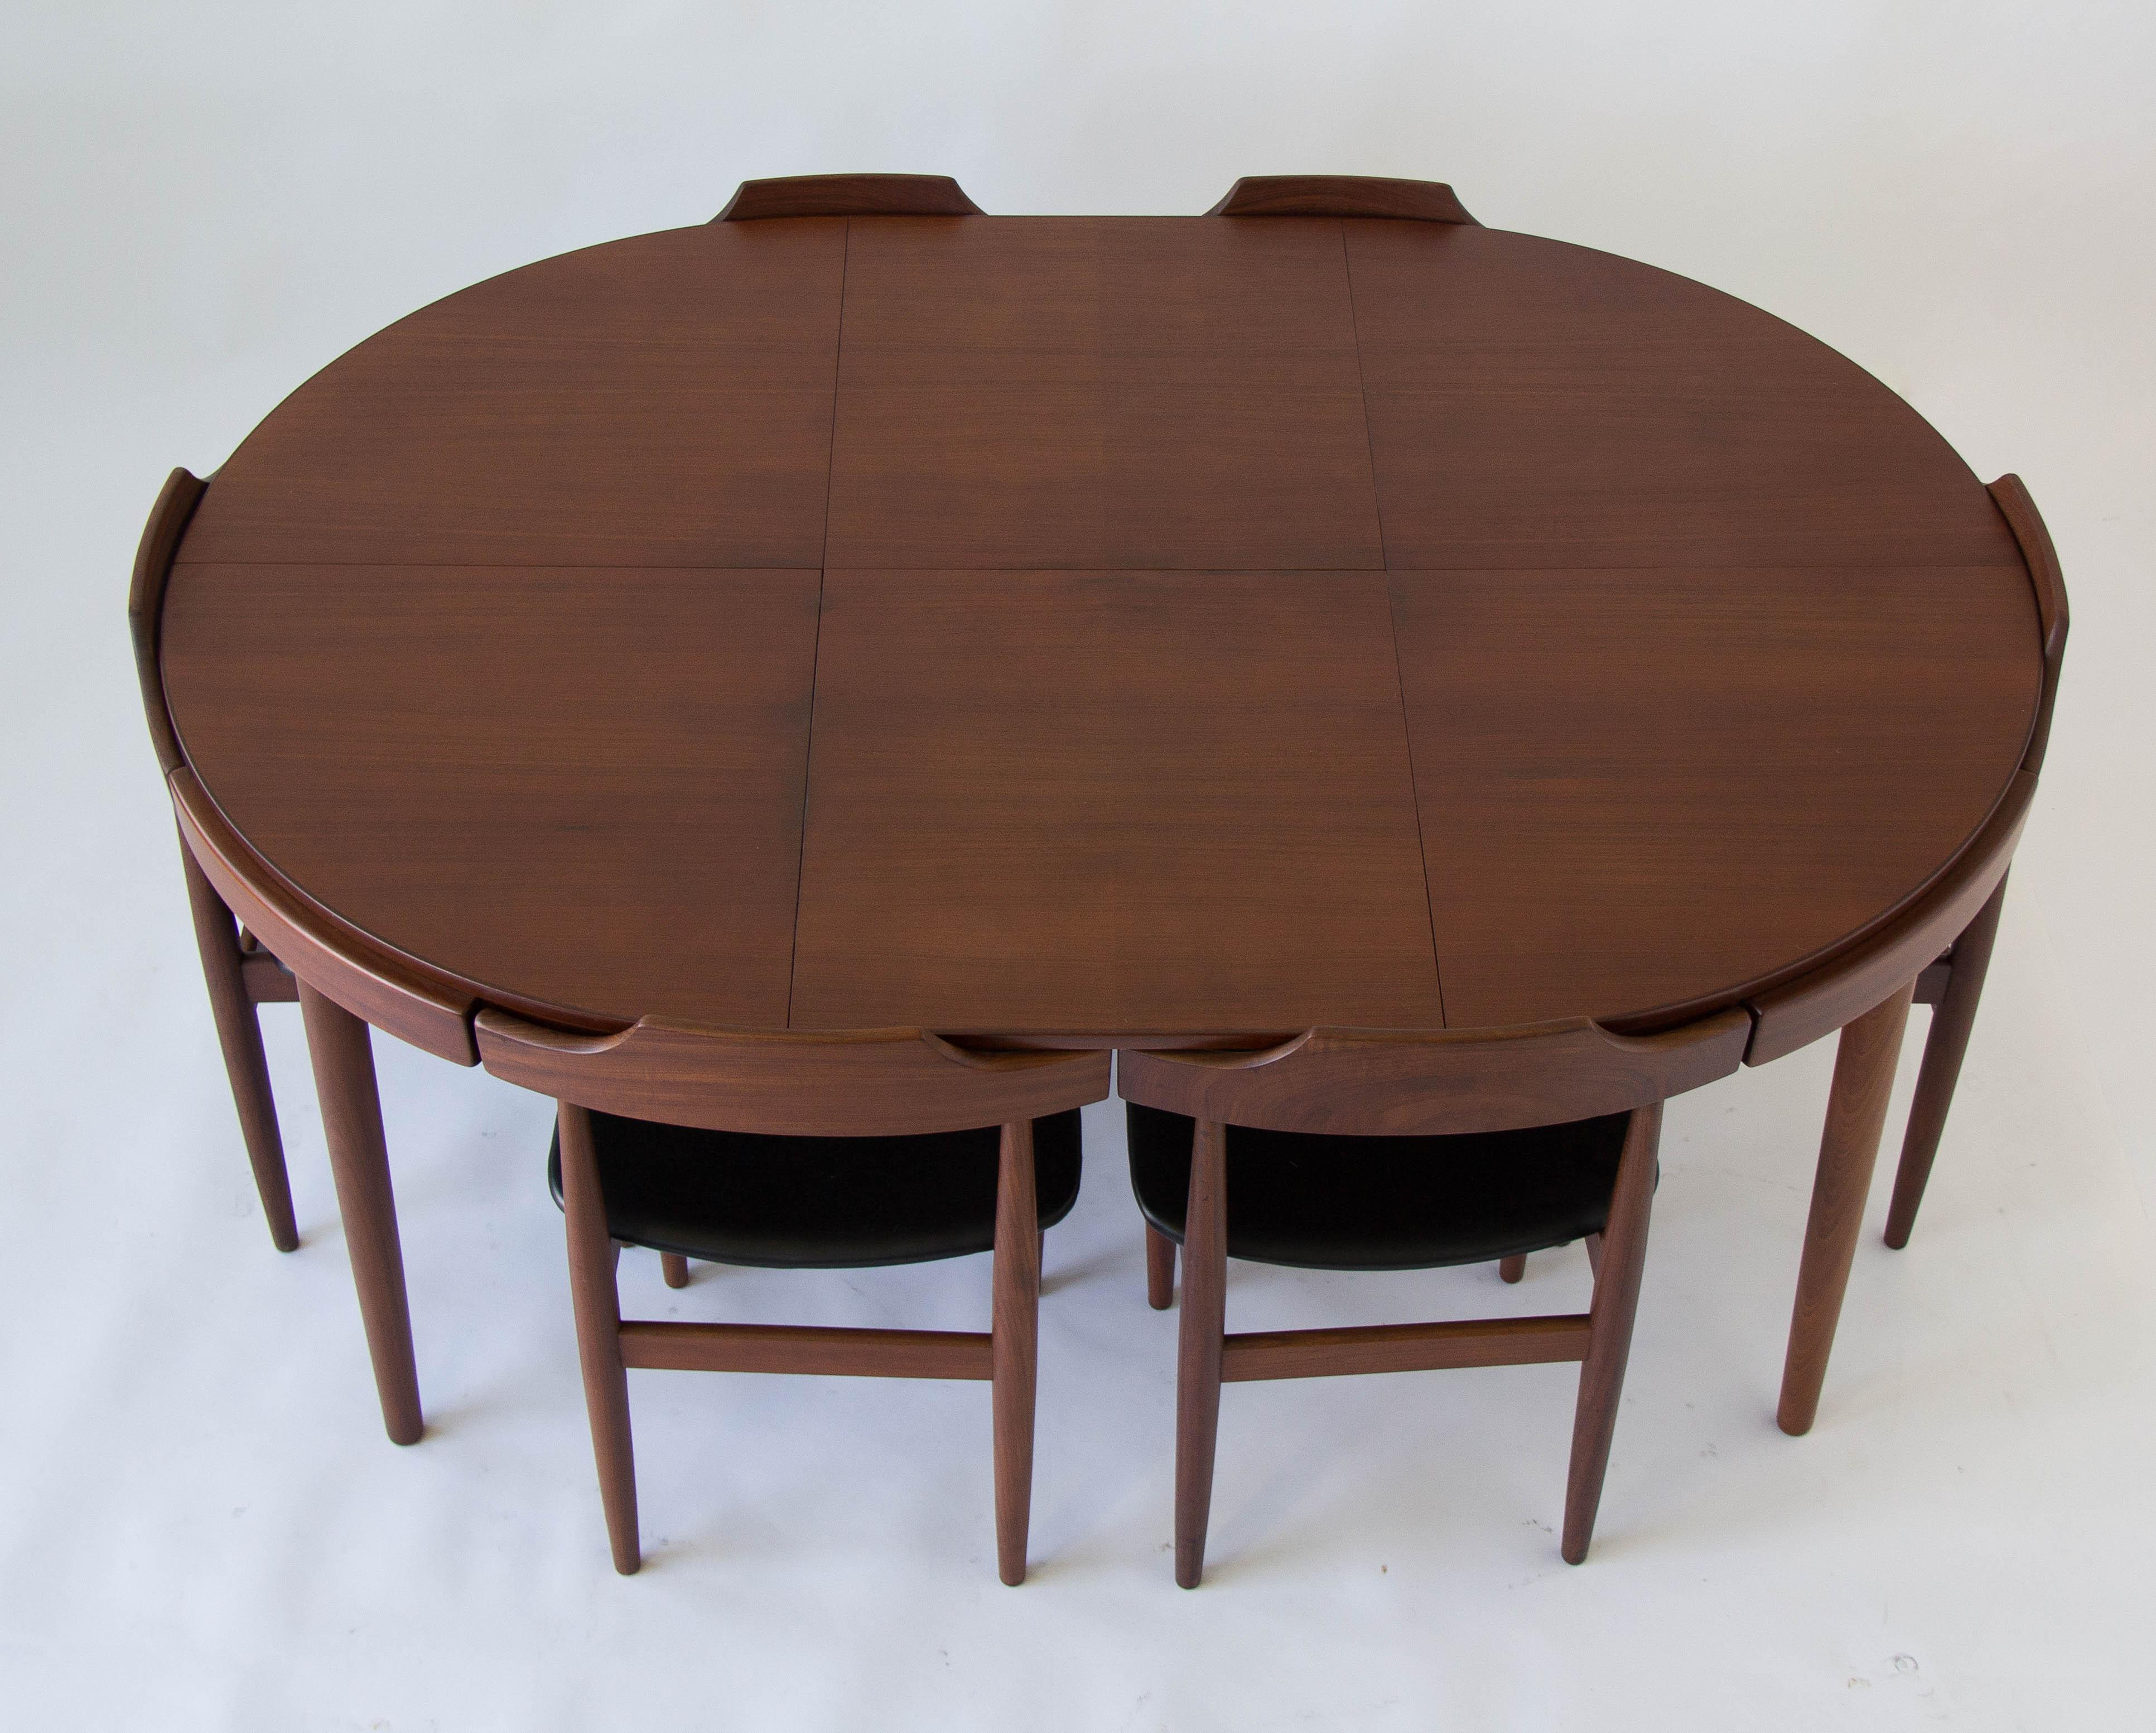 High Quality 1970s Eight Seat Dining Set By Hans Olsen For Frem Rojle For Sale   Image